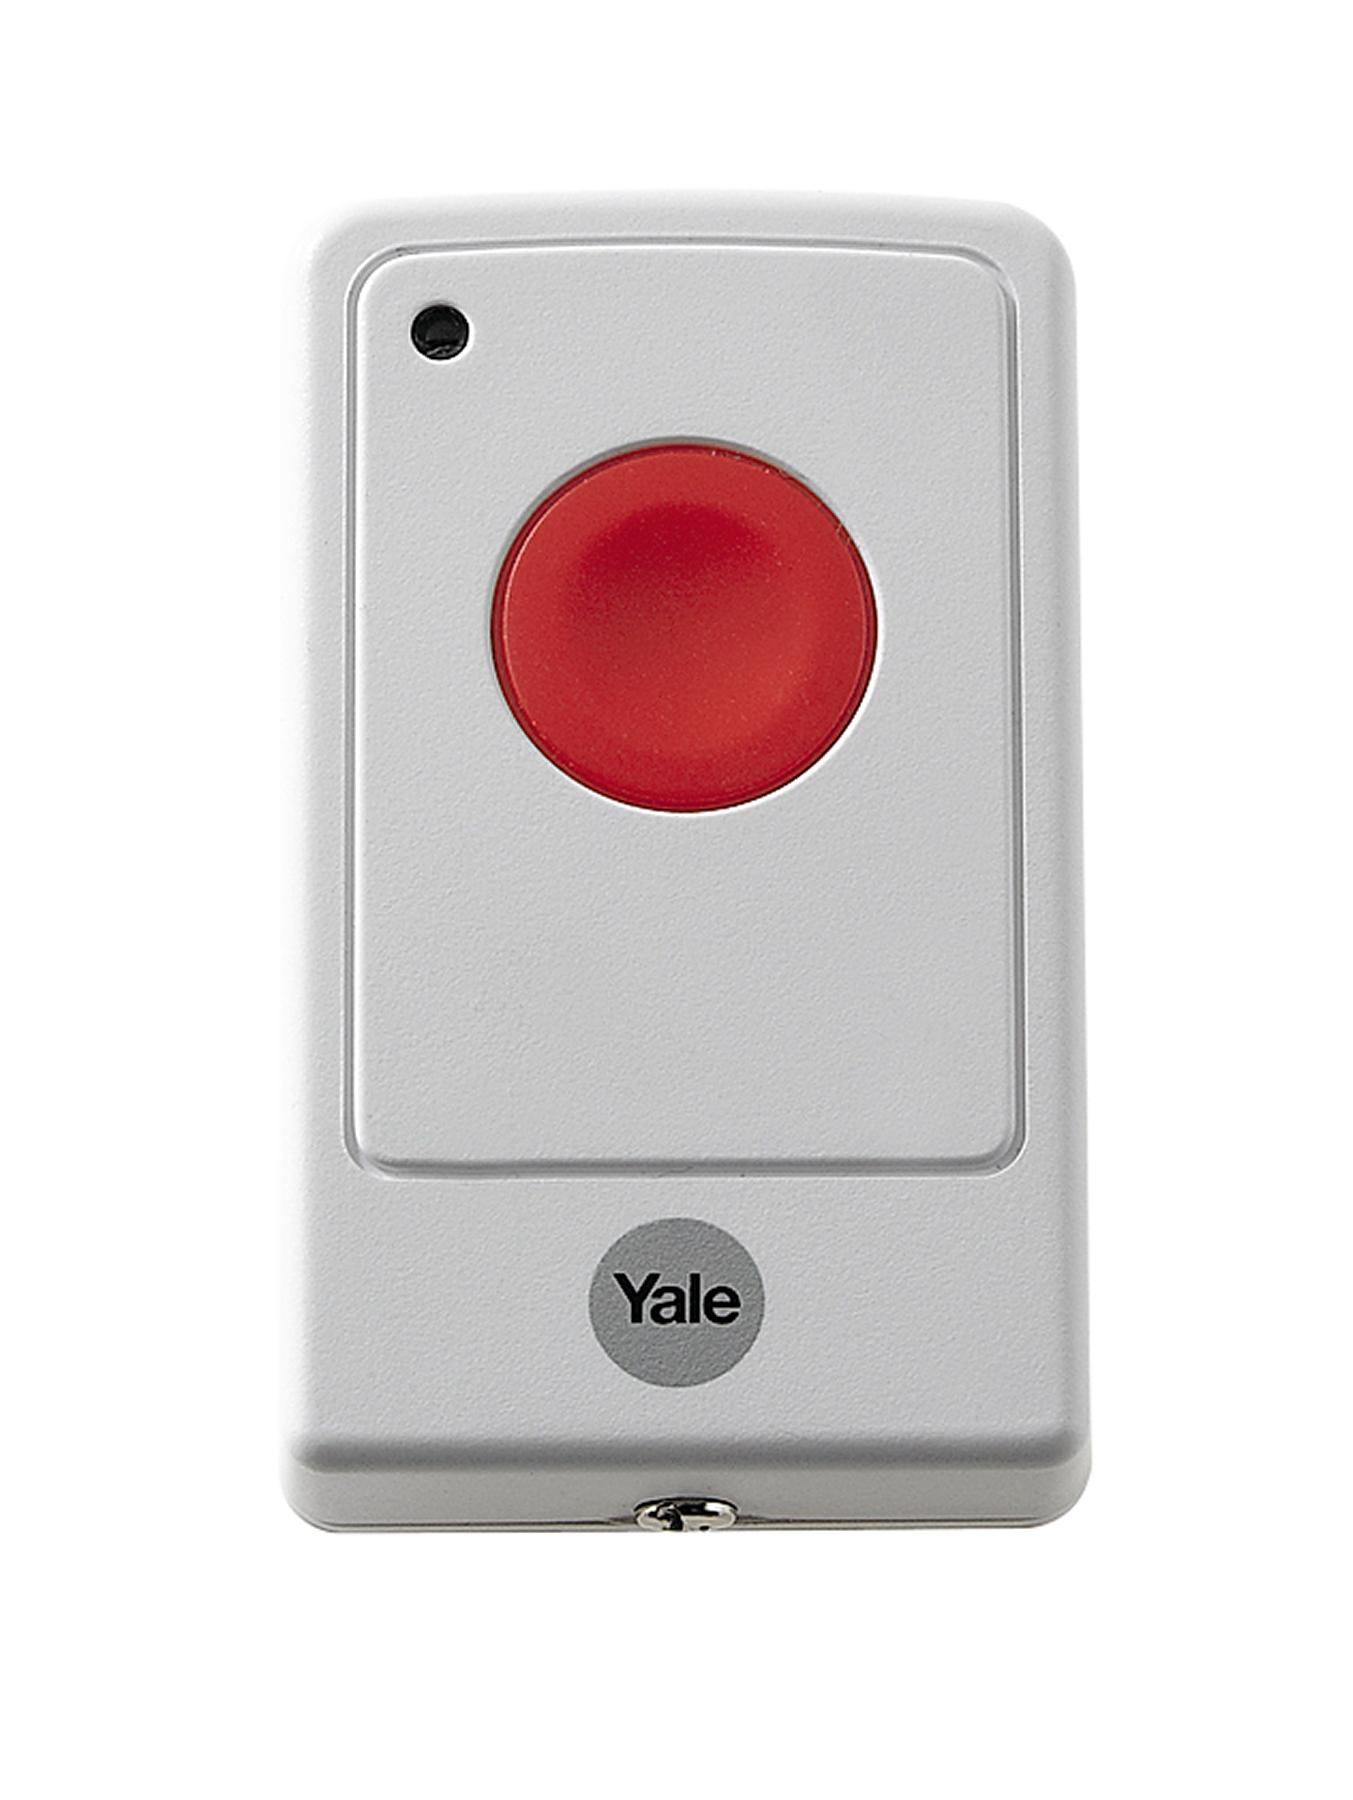 Yale Easy Fit Panic Button Alarm